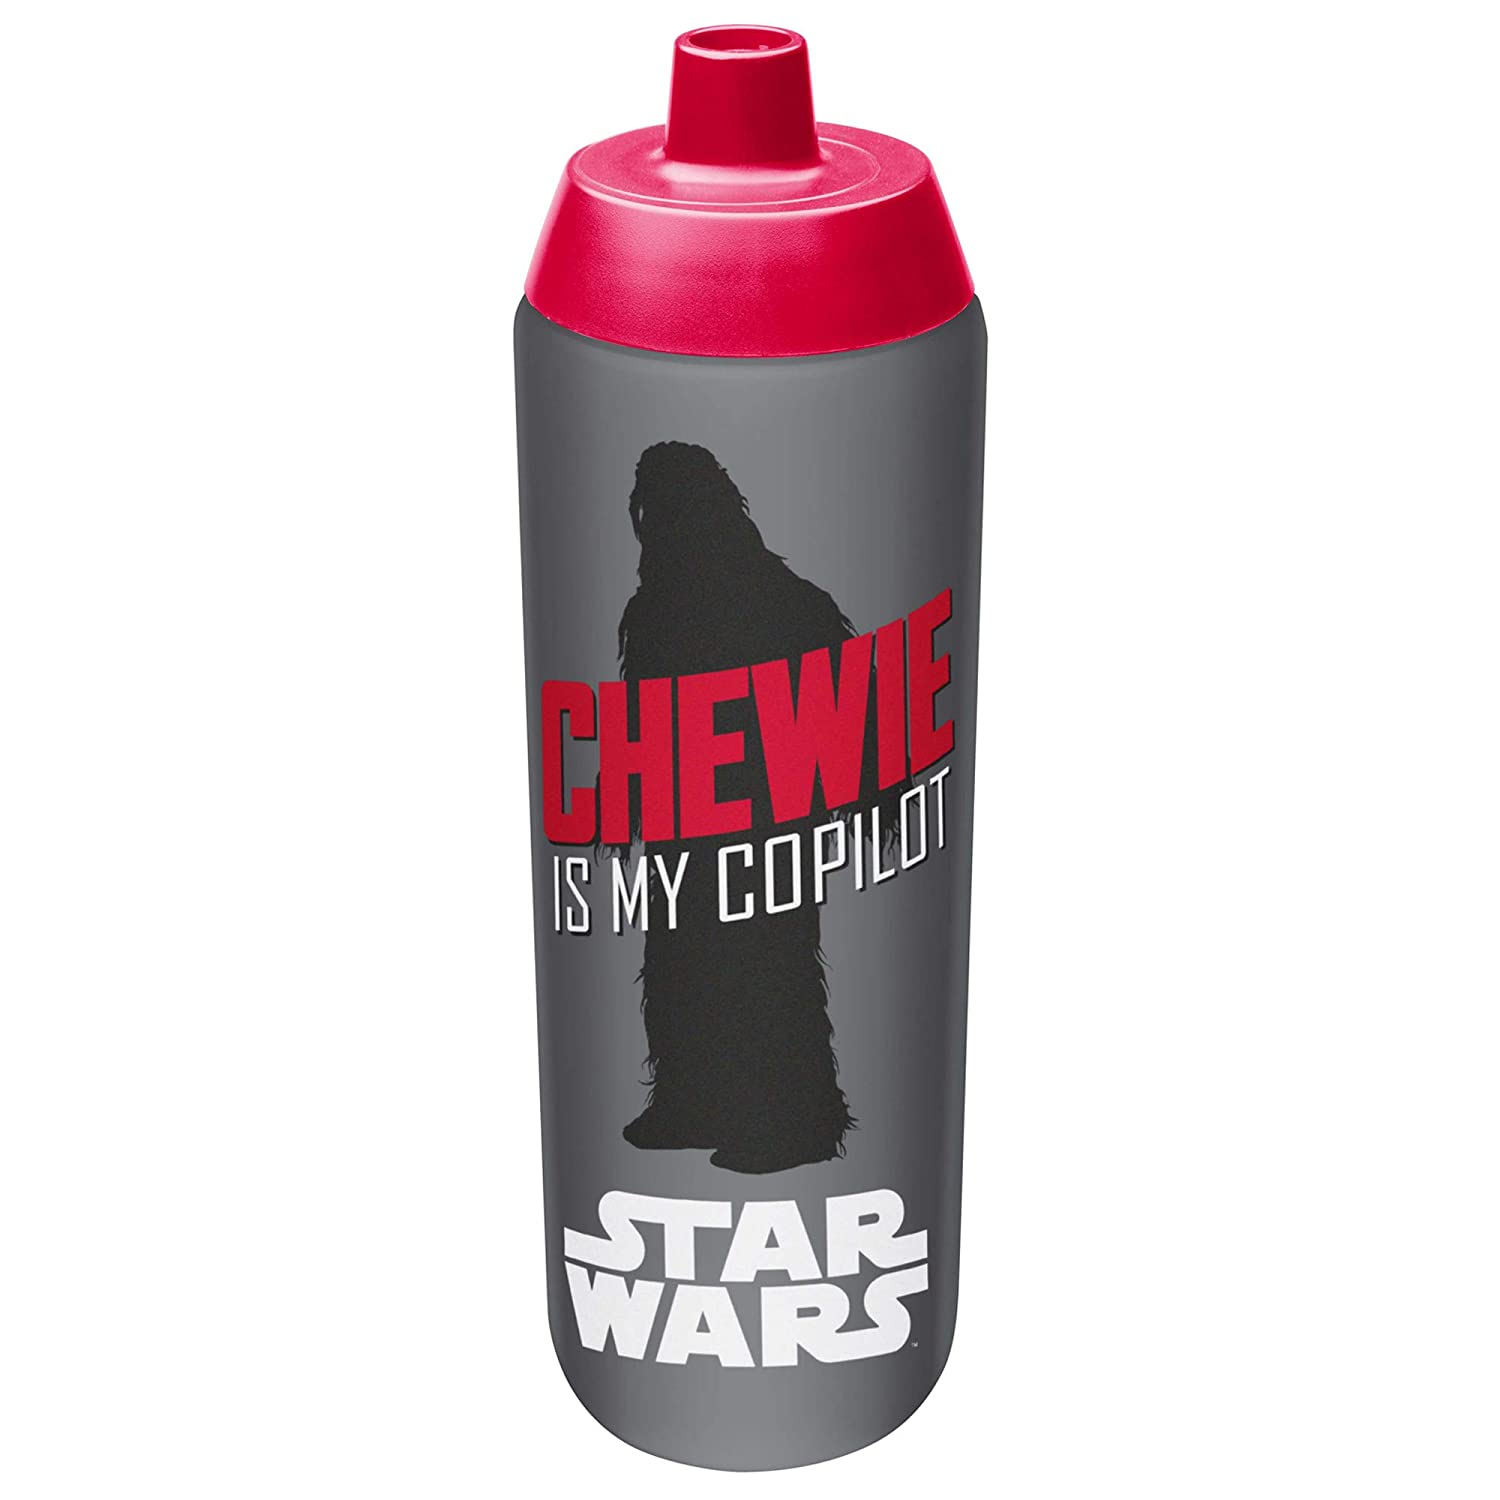 Zak! Designs Vacuum Insulated Growler with Convertible Screw-on Lid and Star Wars Graphics, Powder Coated Stainless Steel, Leak-proof Double Wall Construction for Hot & Cold Drinks,BPA-free, 64oz Zak Designs SWRG-R310